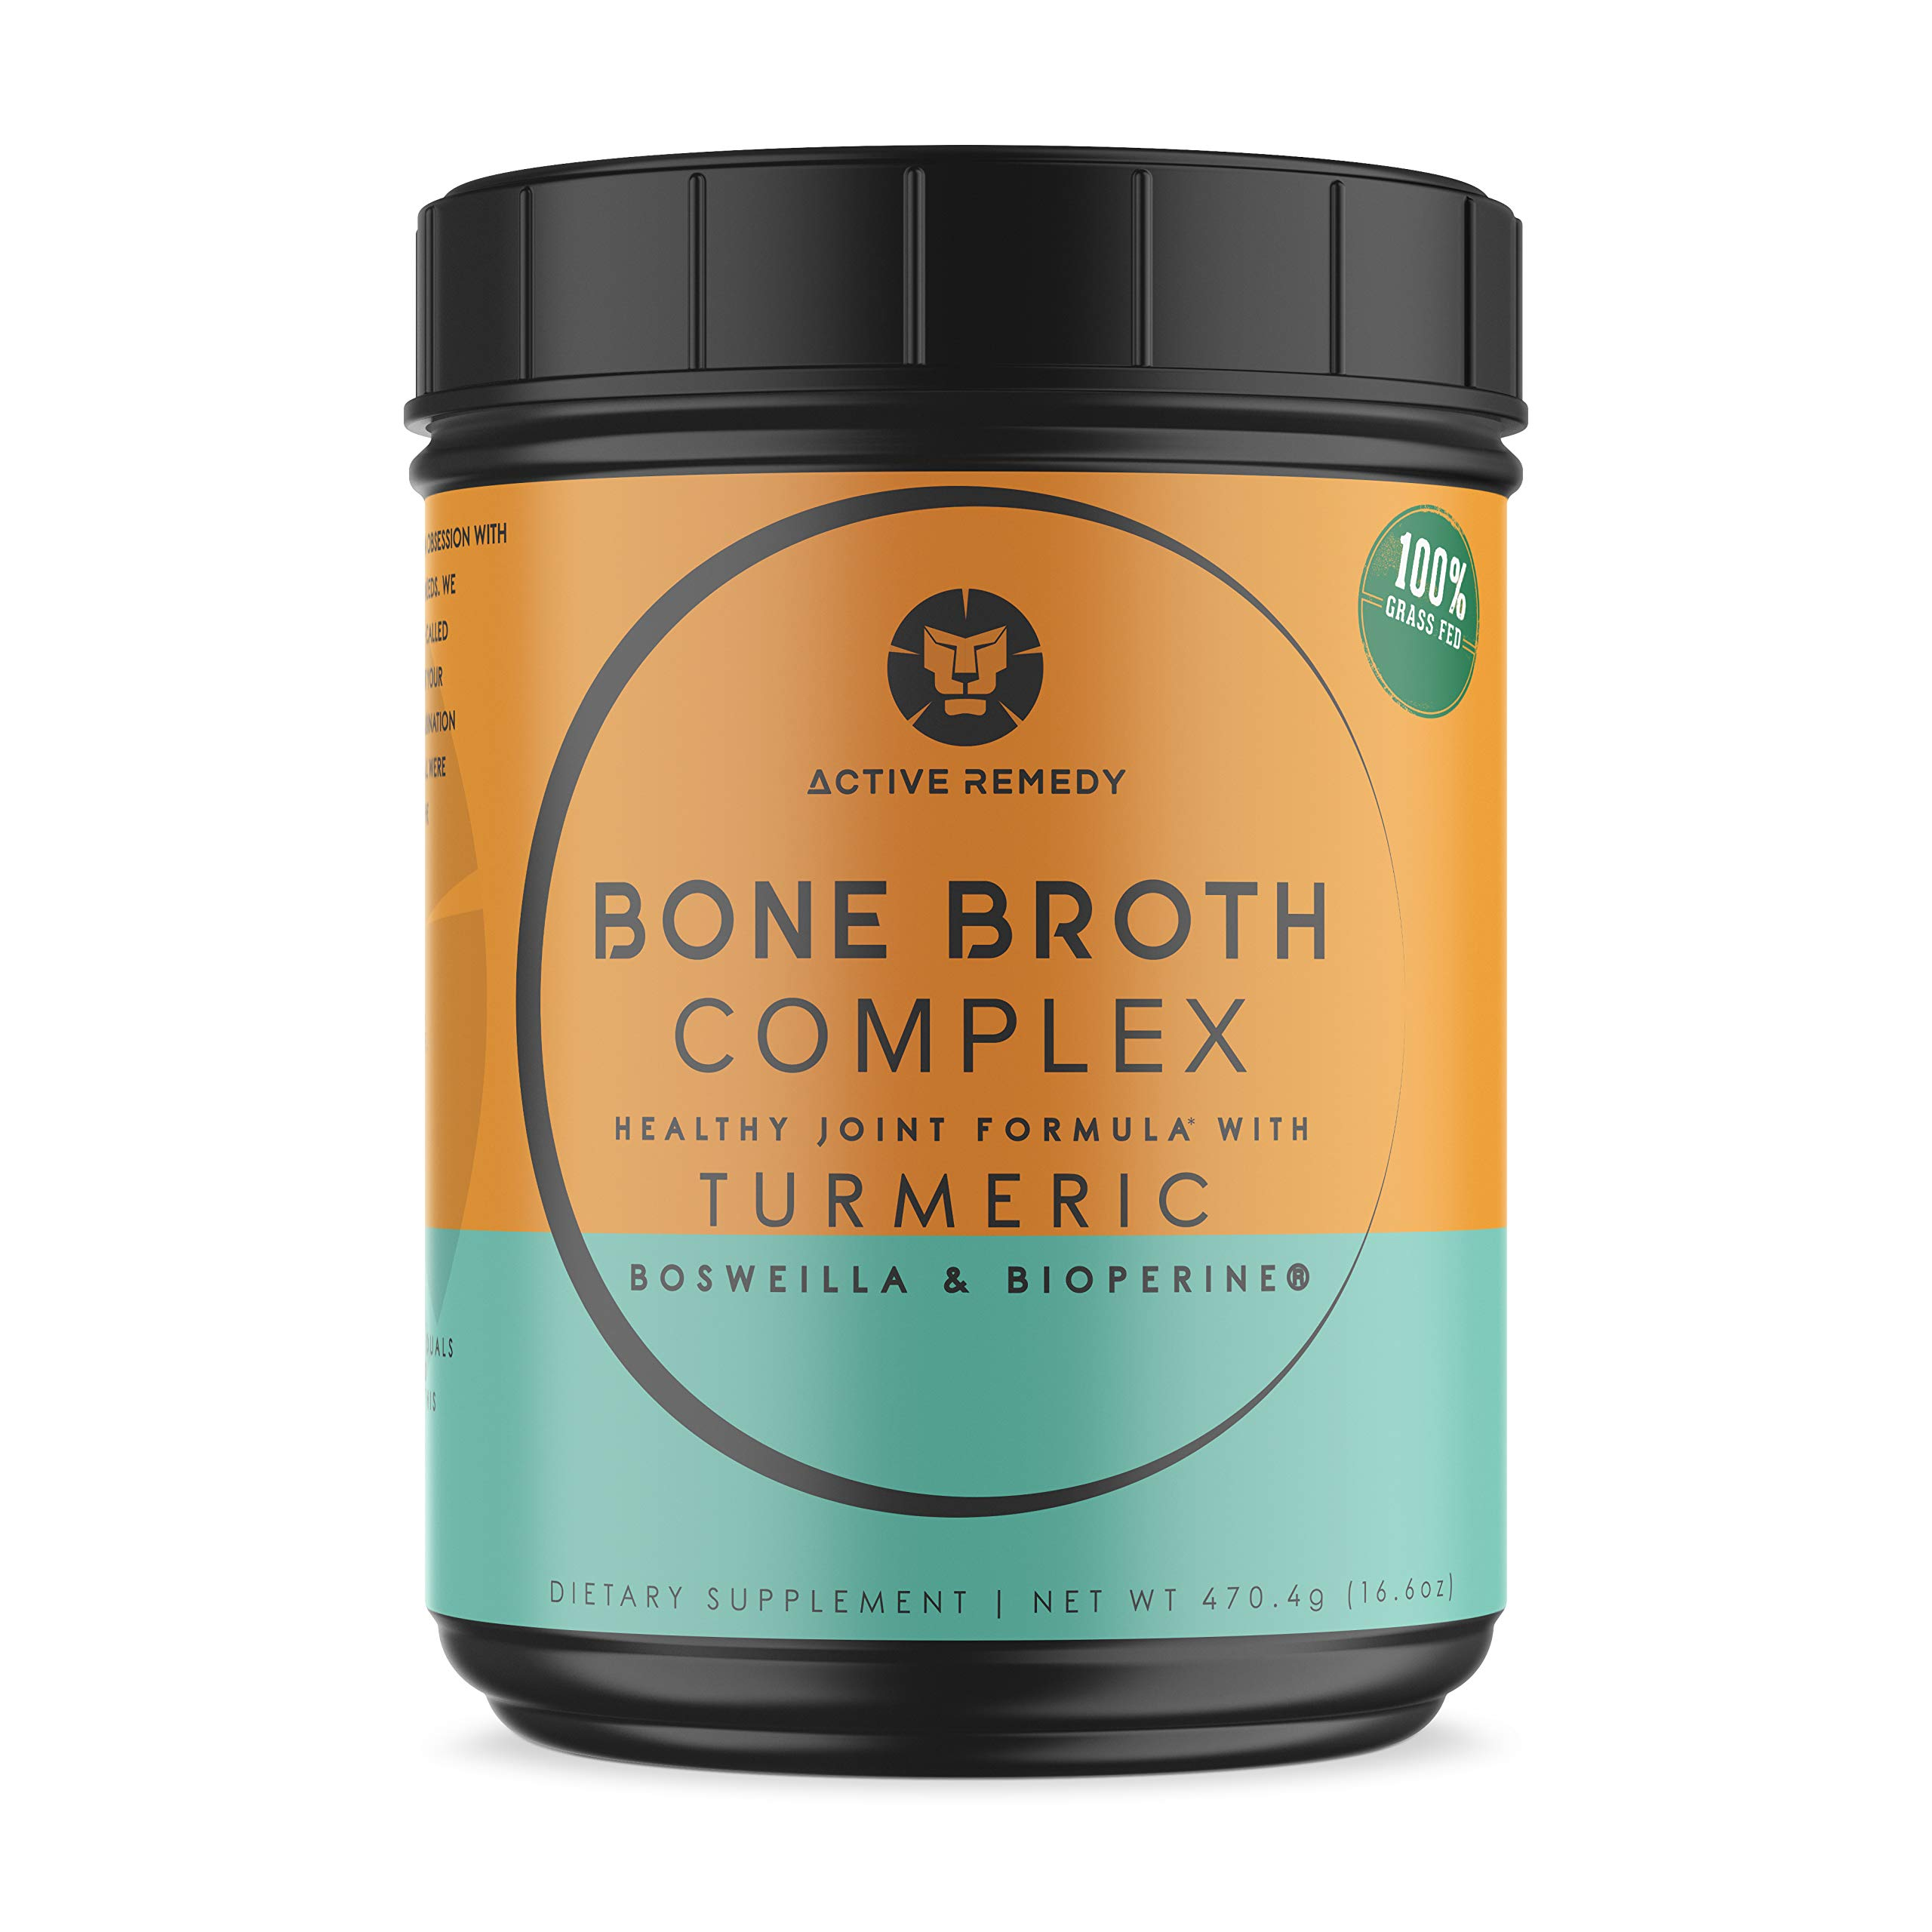 Grass-fed Bone Broth Protein Powder - Unique Joint Support Formula with Turmeric Curcumin, BioPerine & Boswellia -Collagen Peptides - Paleo & Keto by Active Remedy